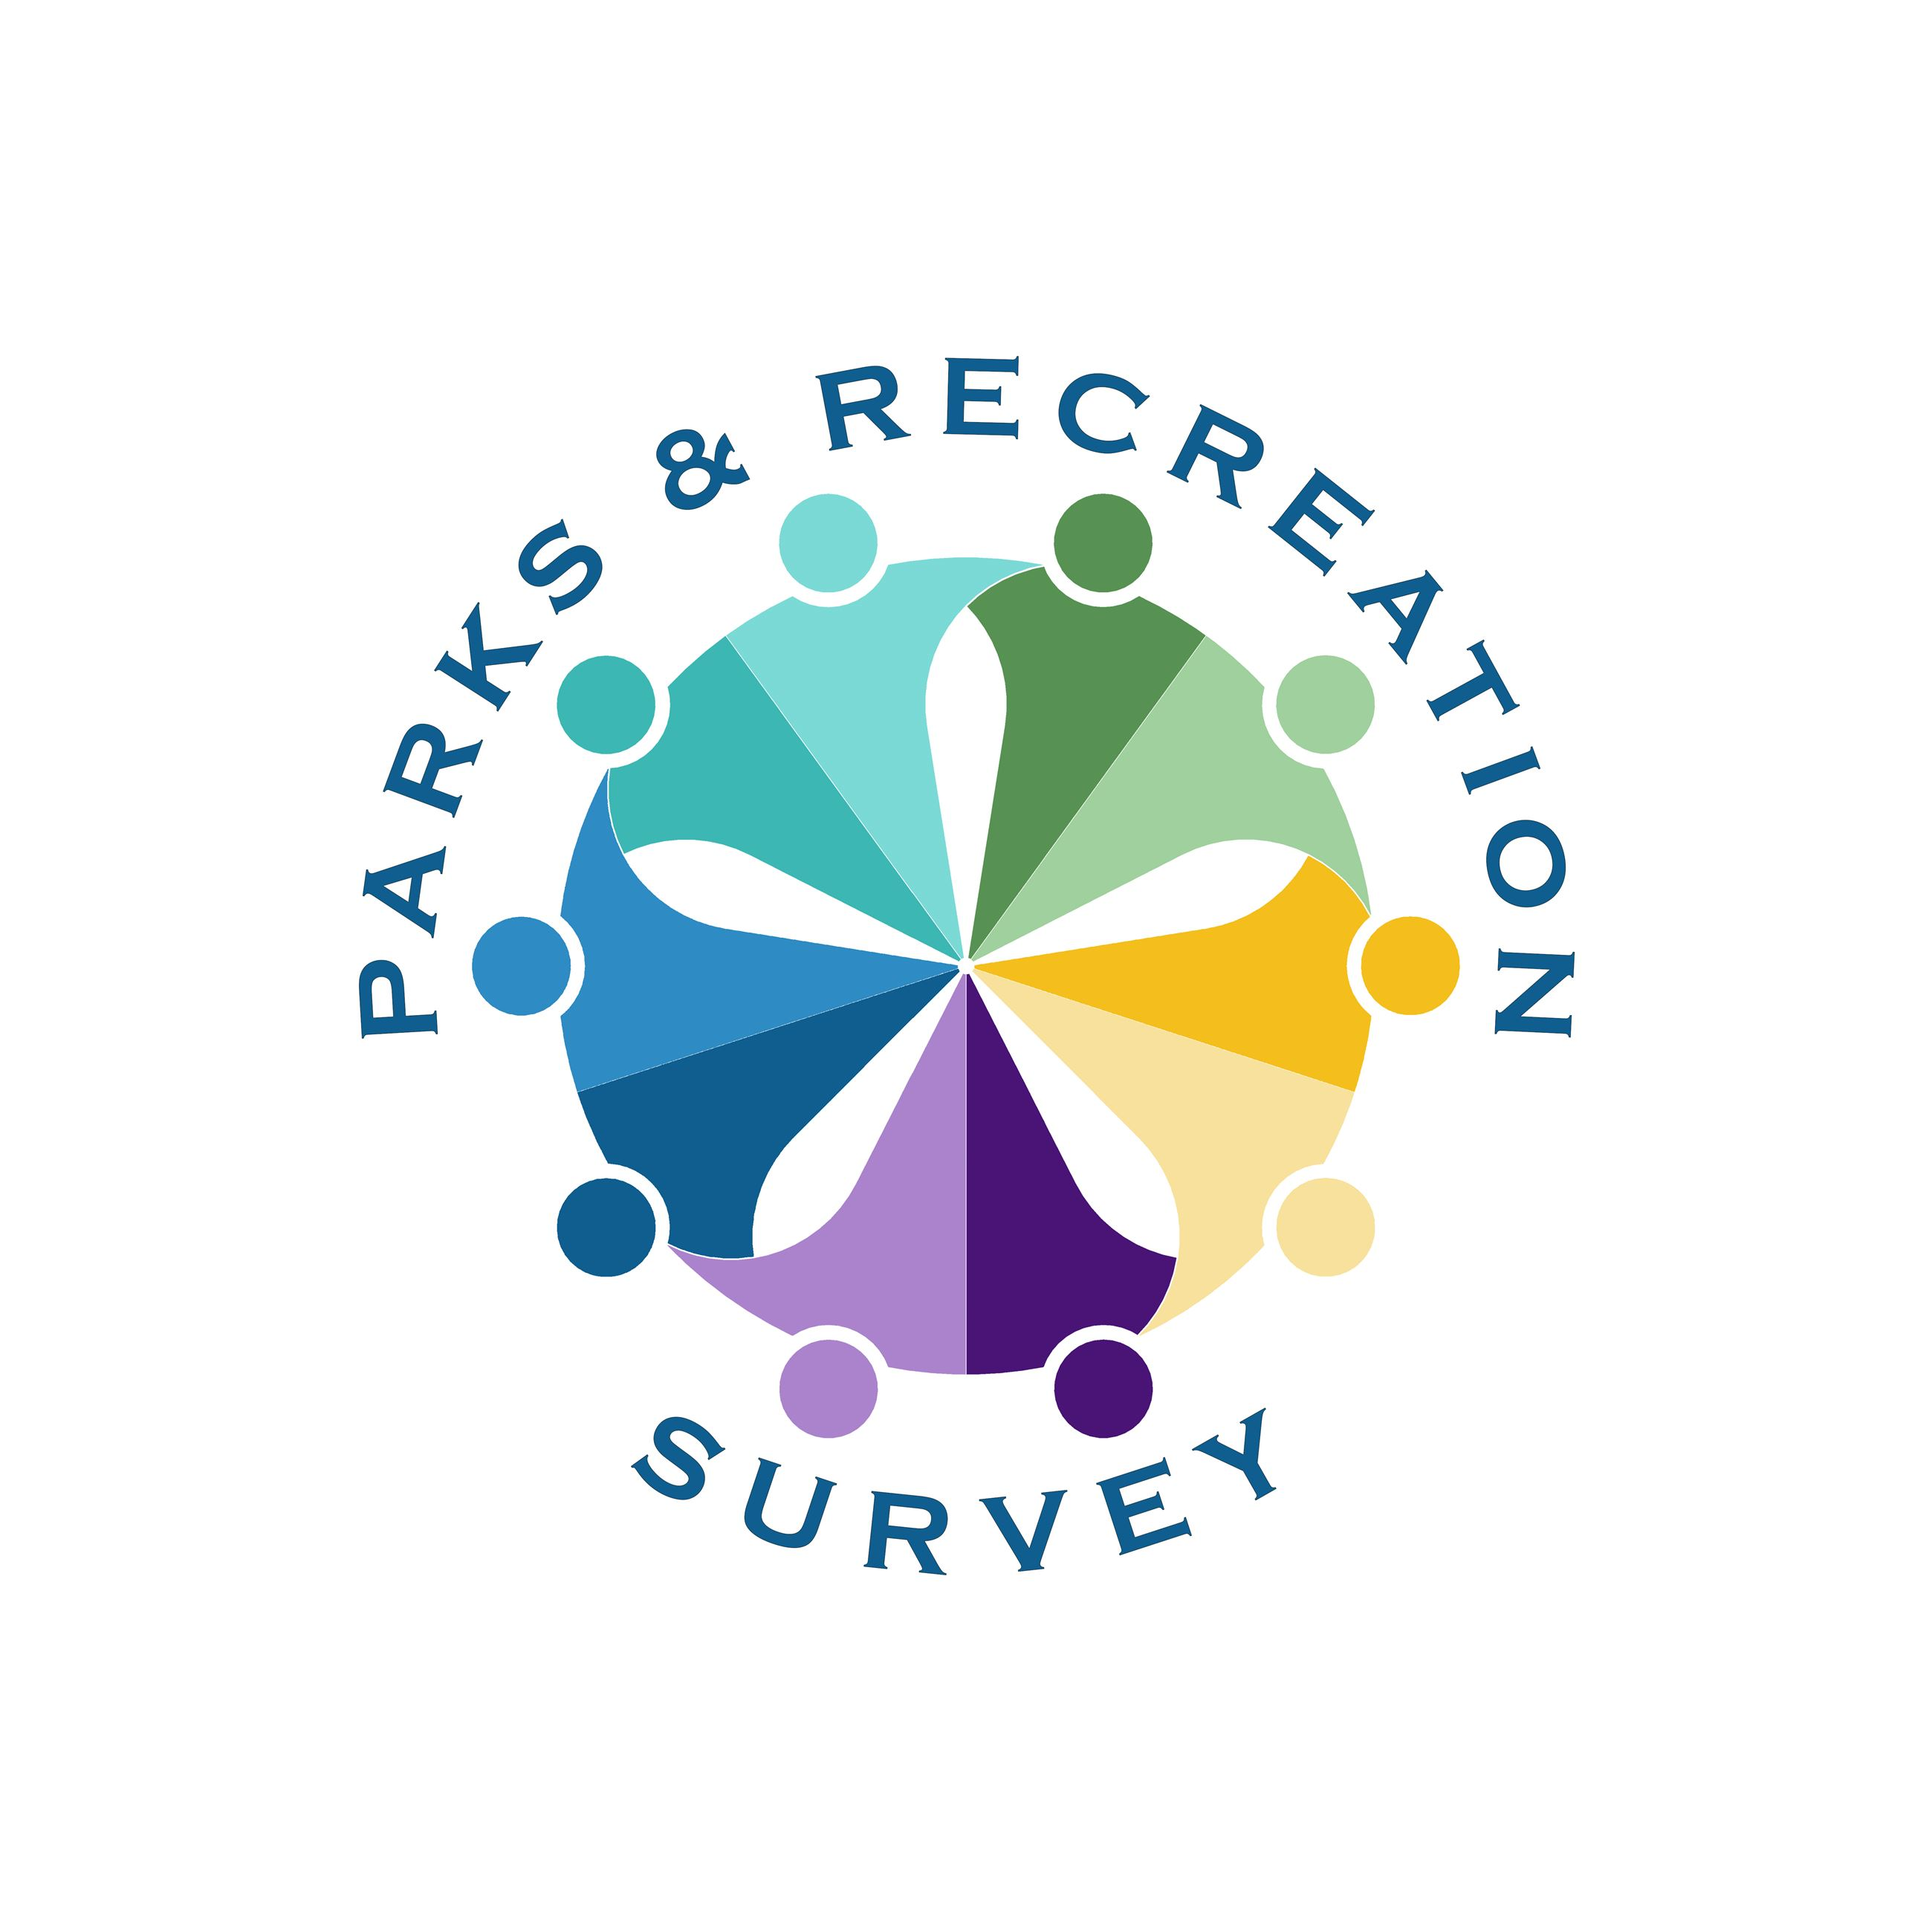 parks and rec survey logo - blue (002)